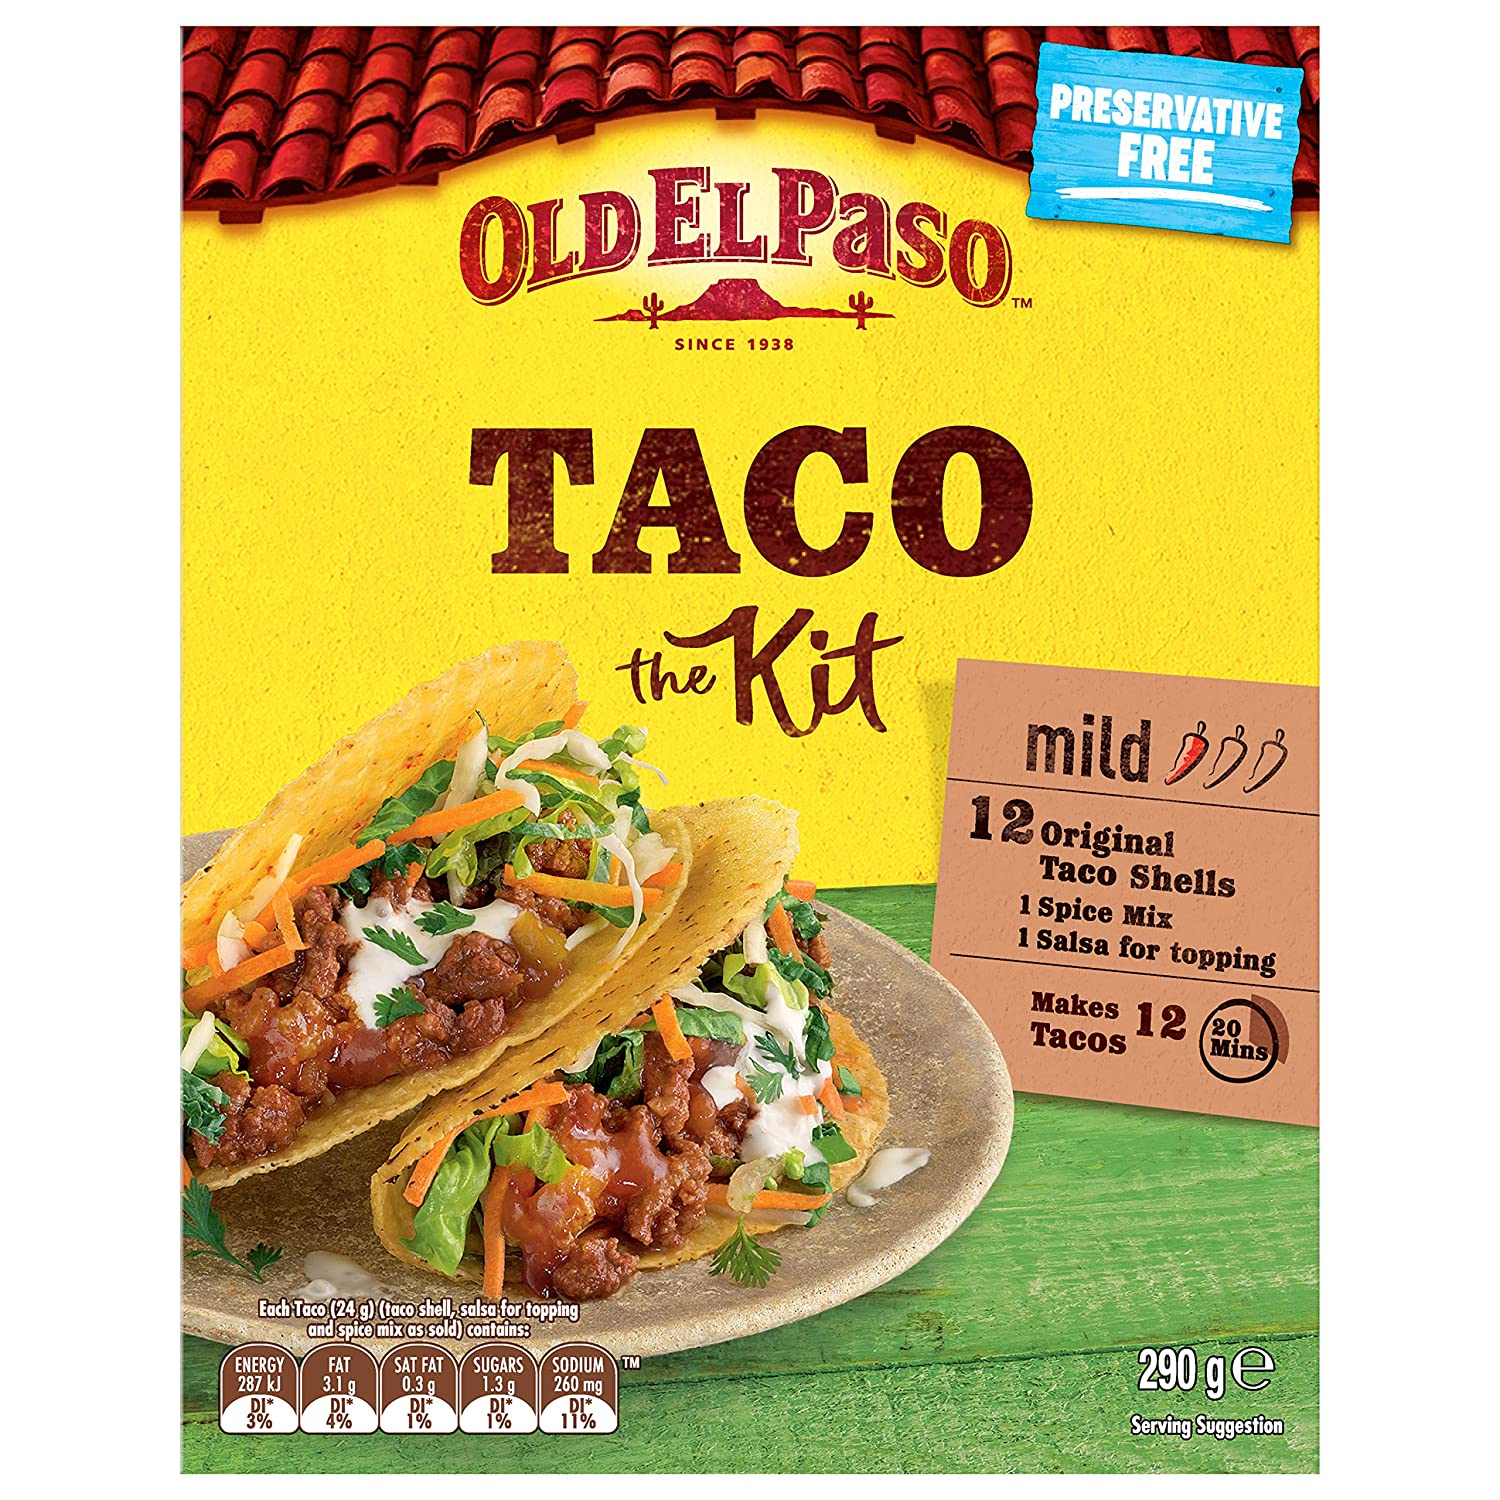 Old At the price of surprise Branded goods El Paso 290g kit taco